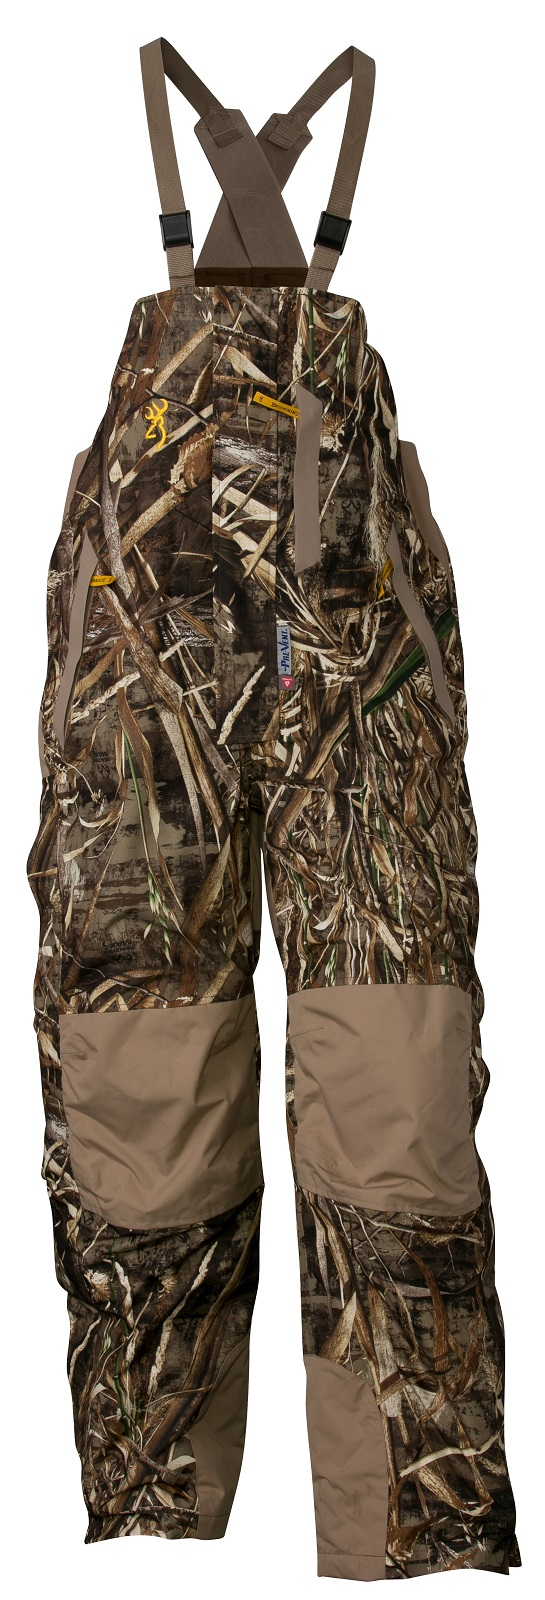 dc9b9854def2a Men's Wicked Wing Insulated Bib - Browning | Latulippe